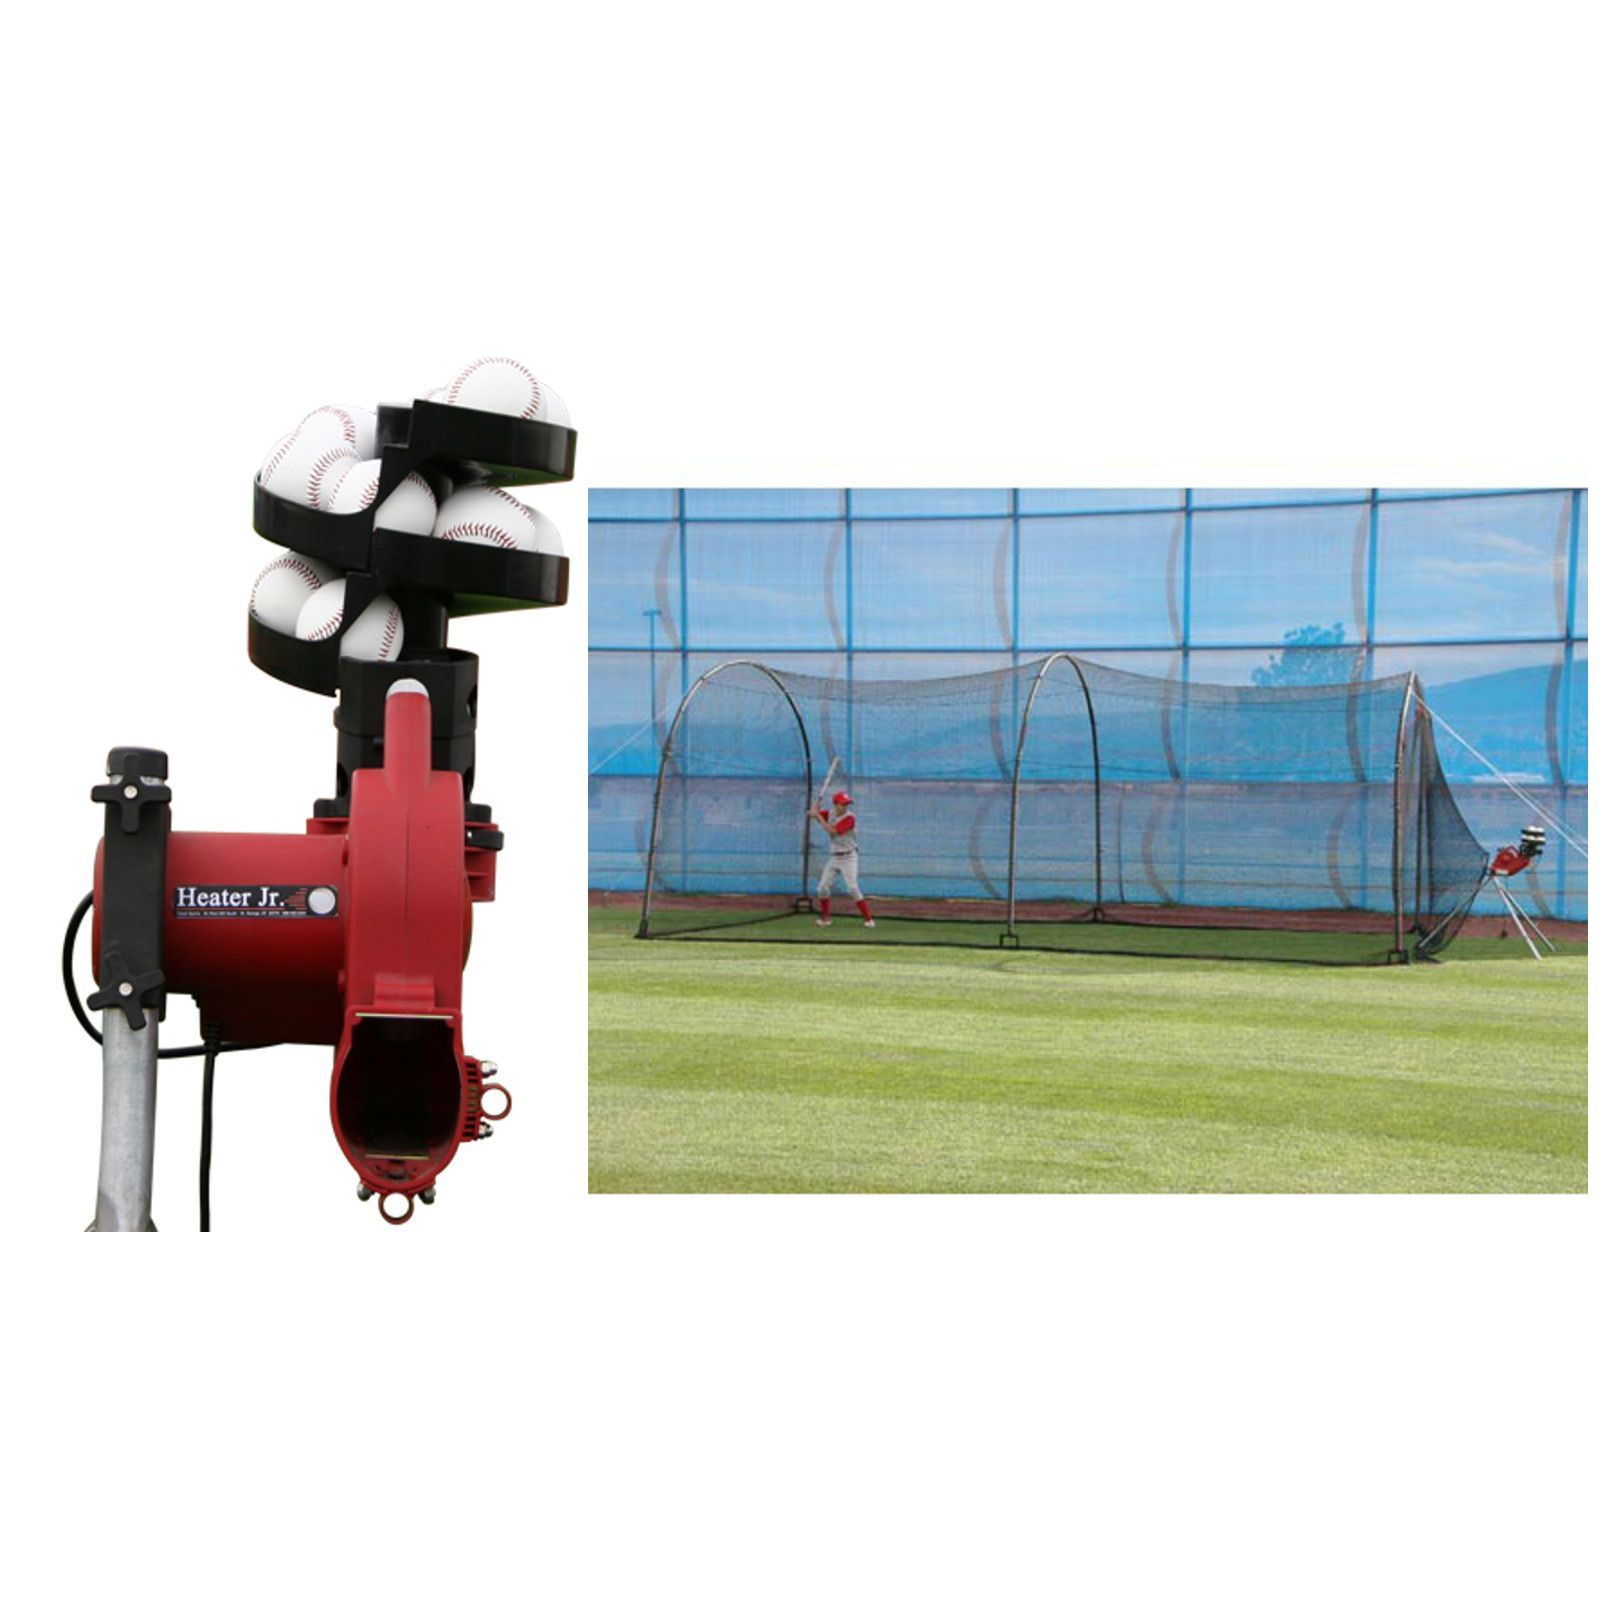 Trend Sports Heater Jr Real Ball Pitching Machine